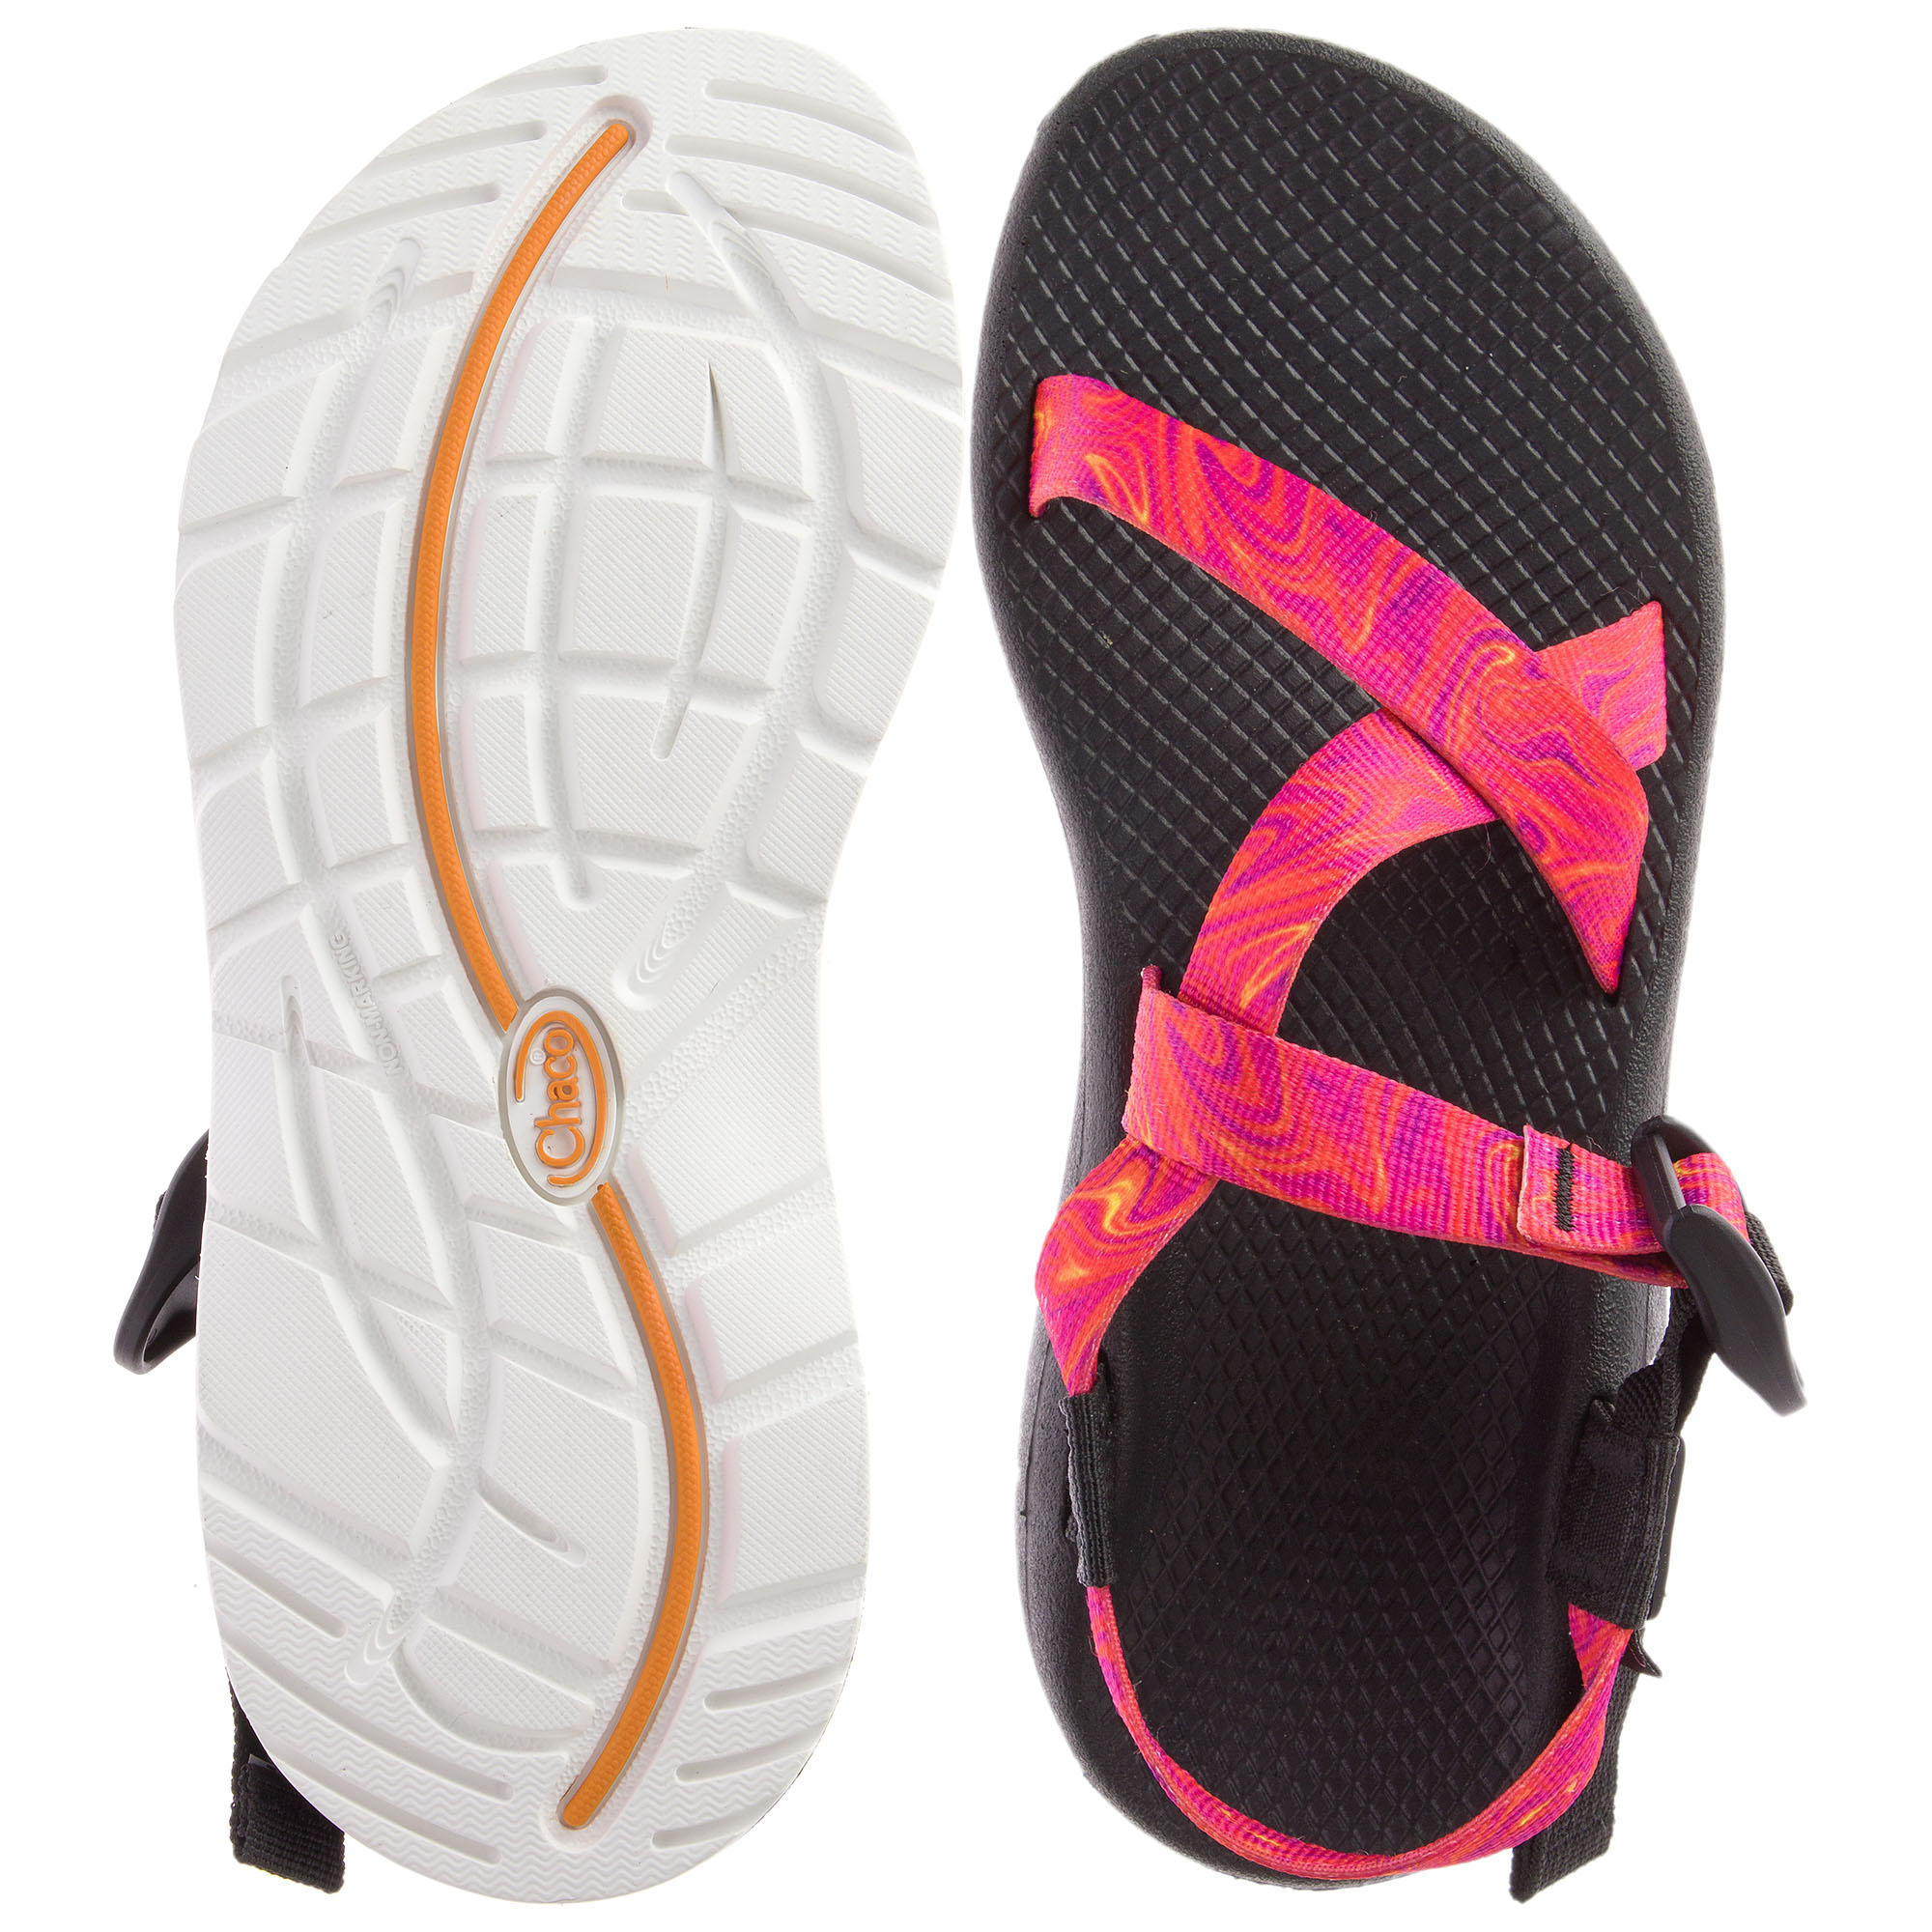 dfdbb7f30f86 Chaco Women s Z Cloud Woodstock Sandals - Sun   Ski Sports